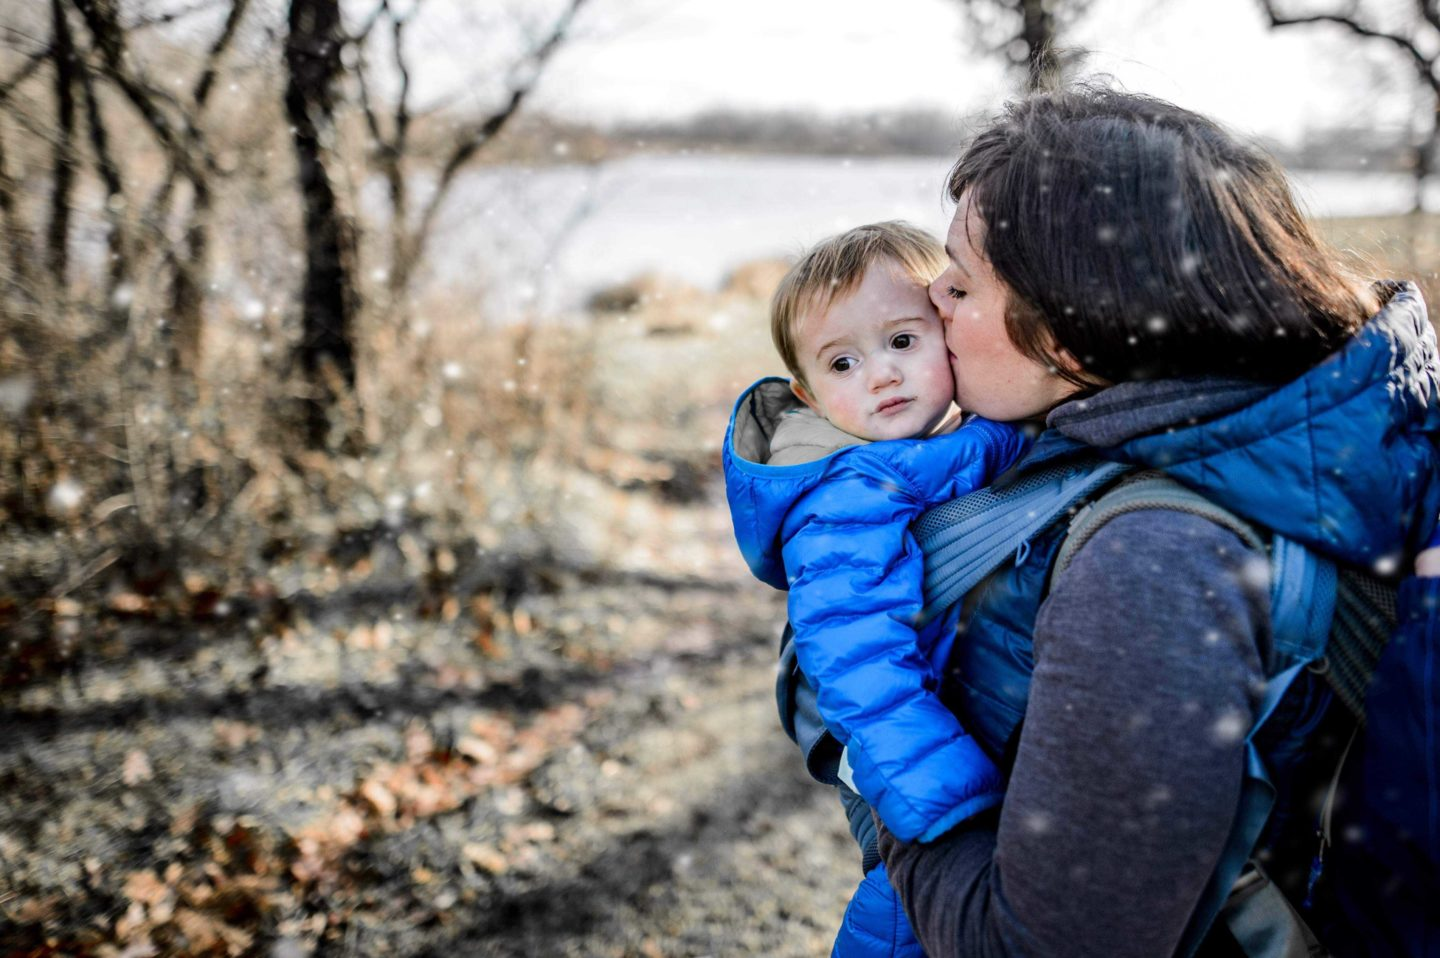 How to keep your family warm on trail in winter by Rebecca Hosley for Hike it Baby